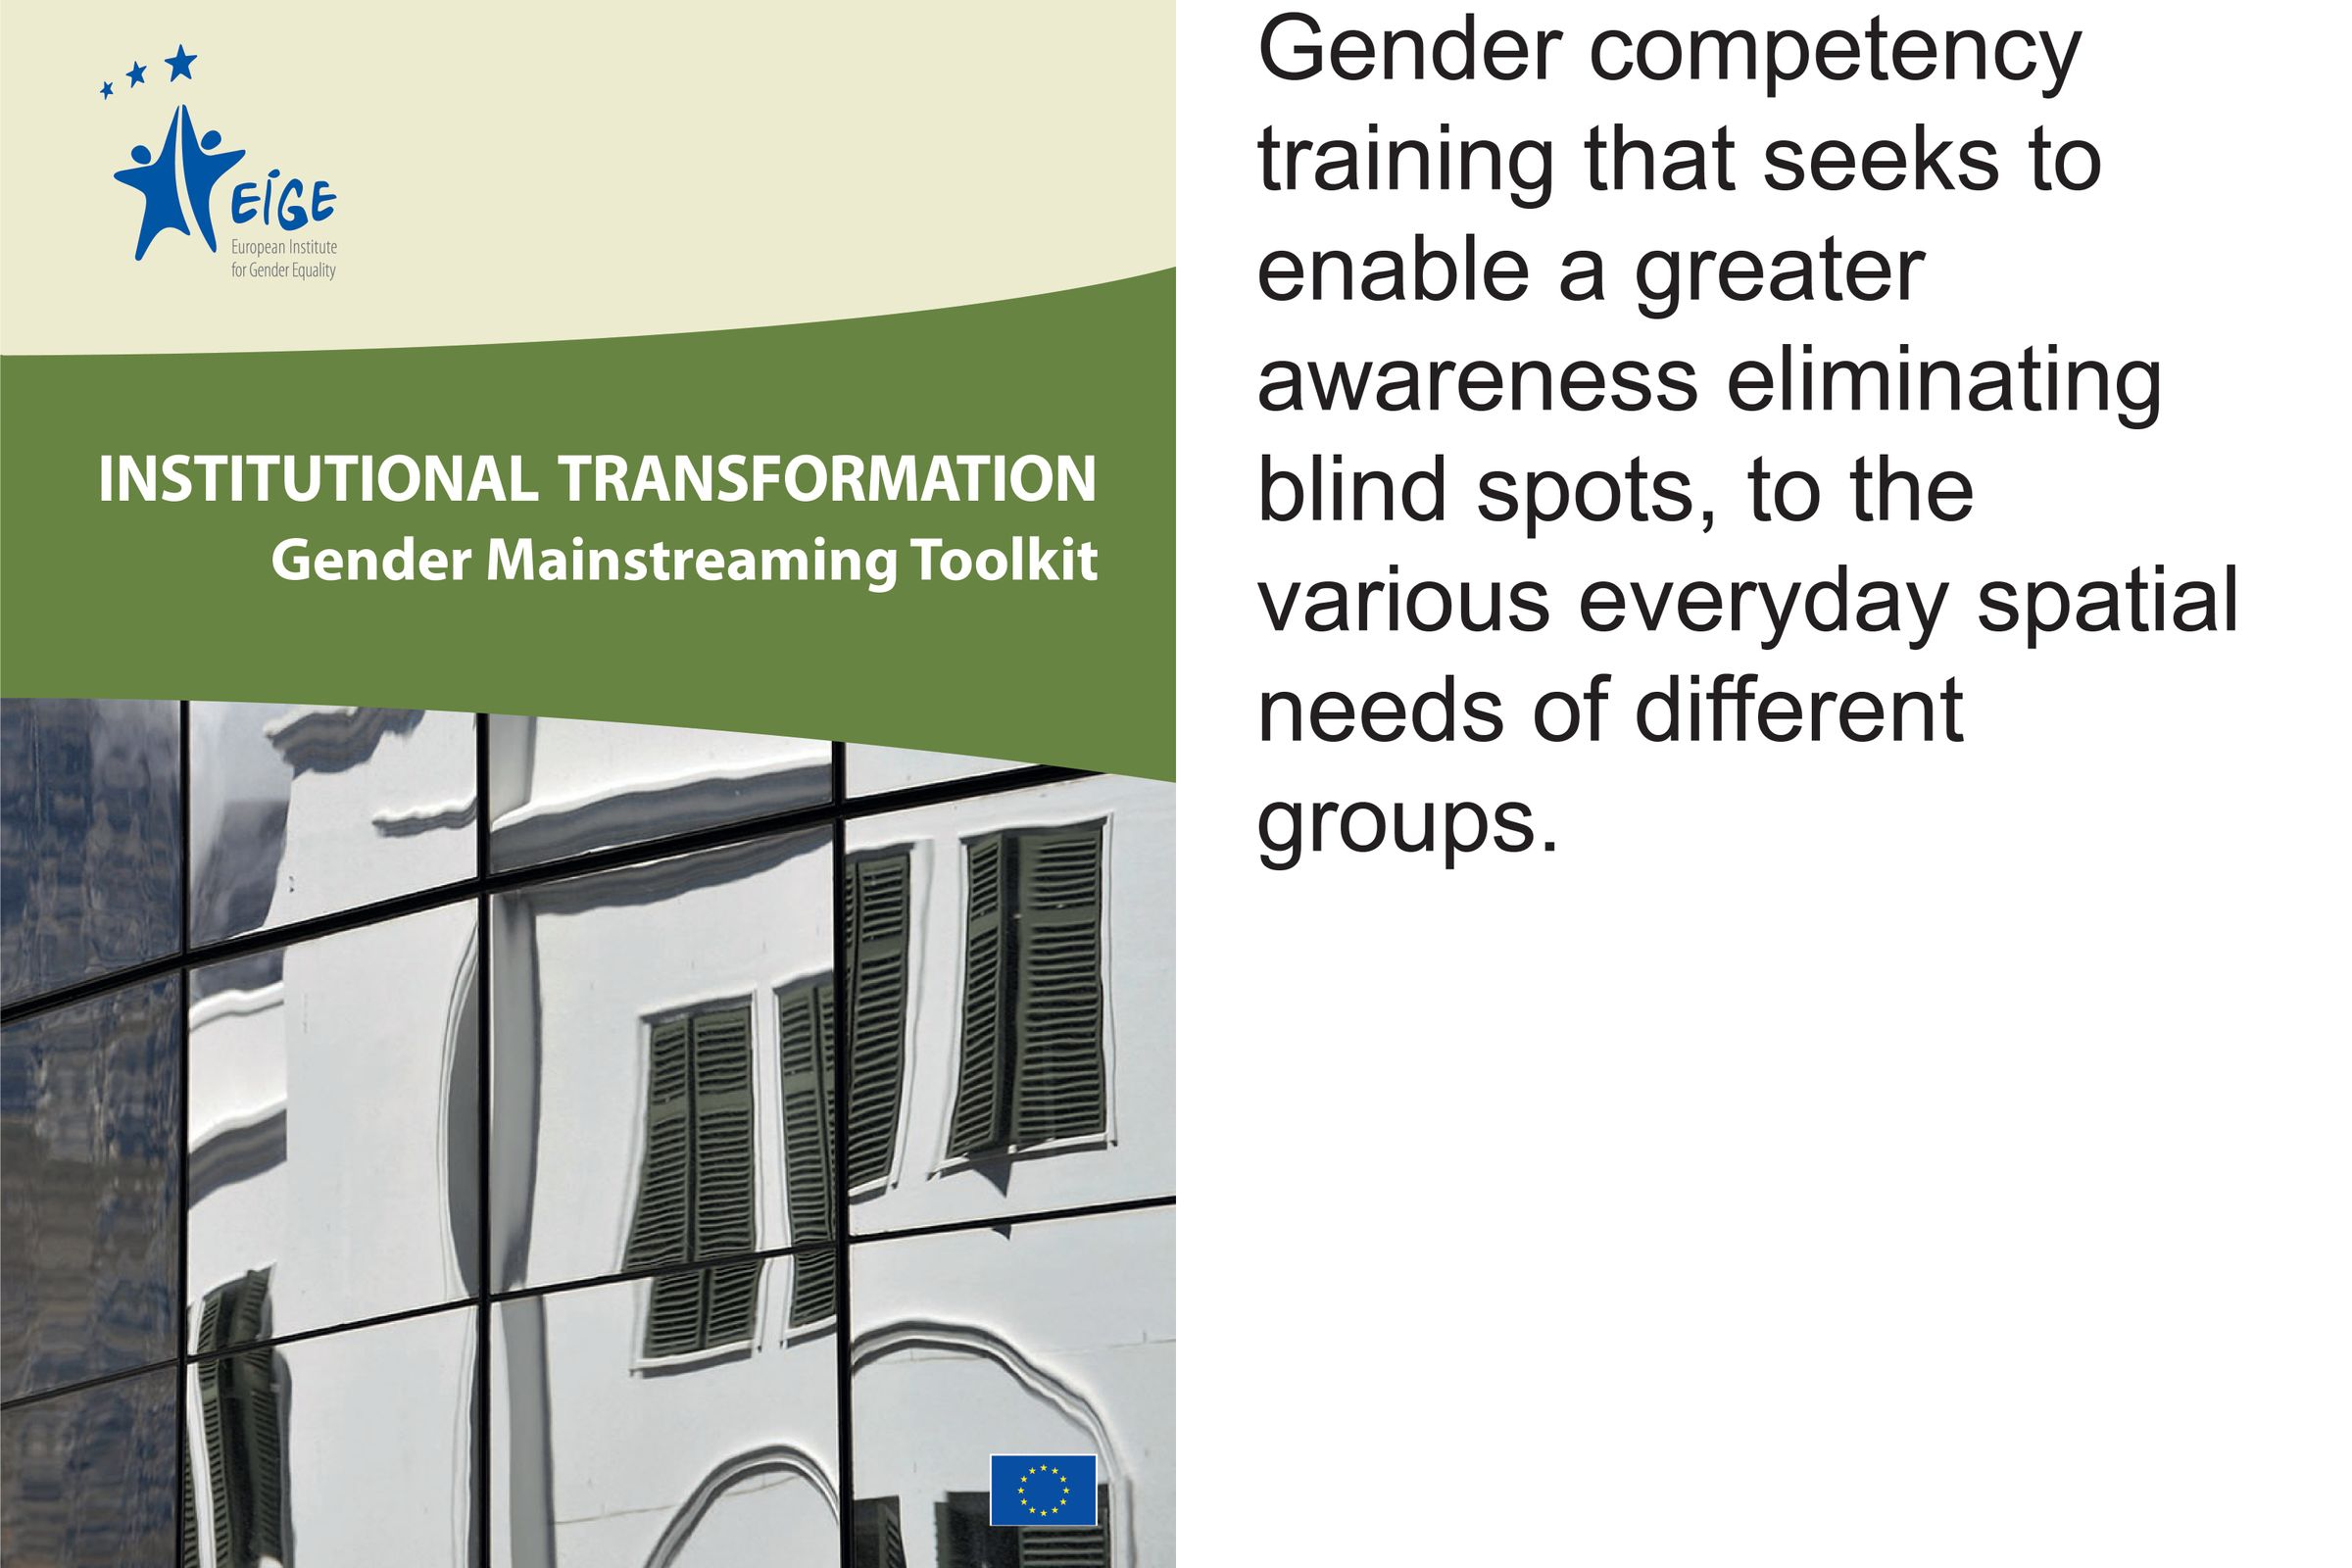 Gender sensitisation - Gender competency training that seeks to enable a greater awareness eliminating blind spots, to the various everyday spatial needs of different groups.